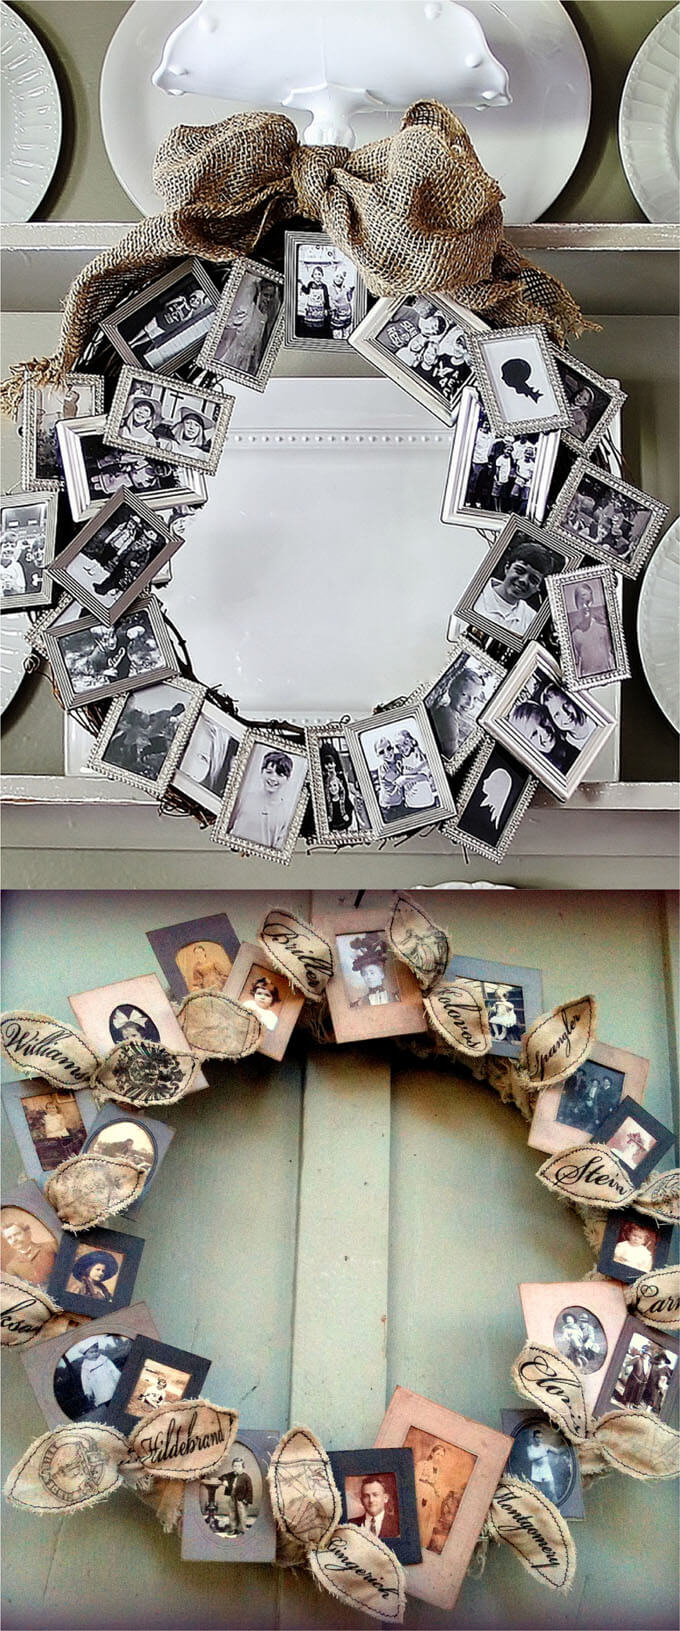 Hang a Wreath of Smiles